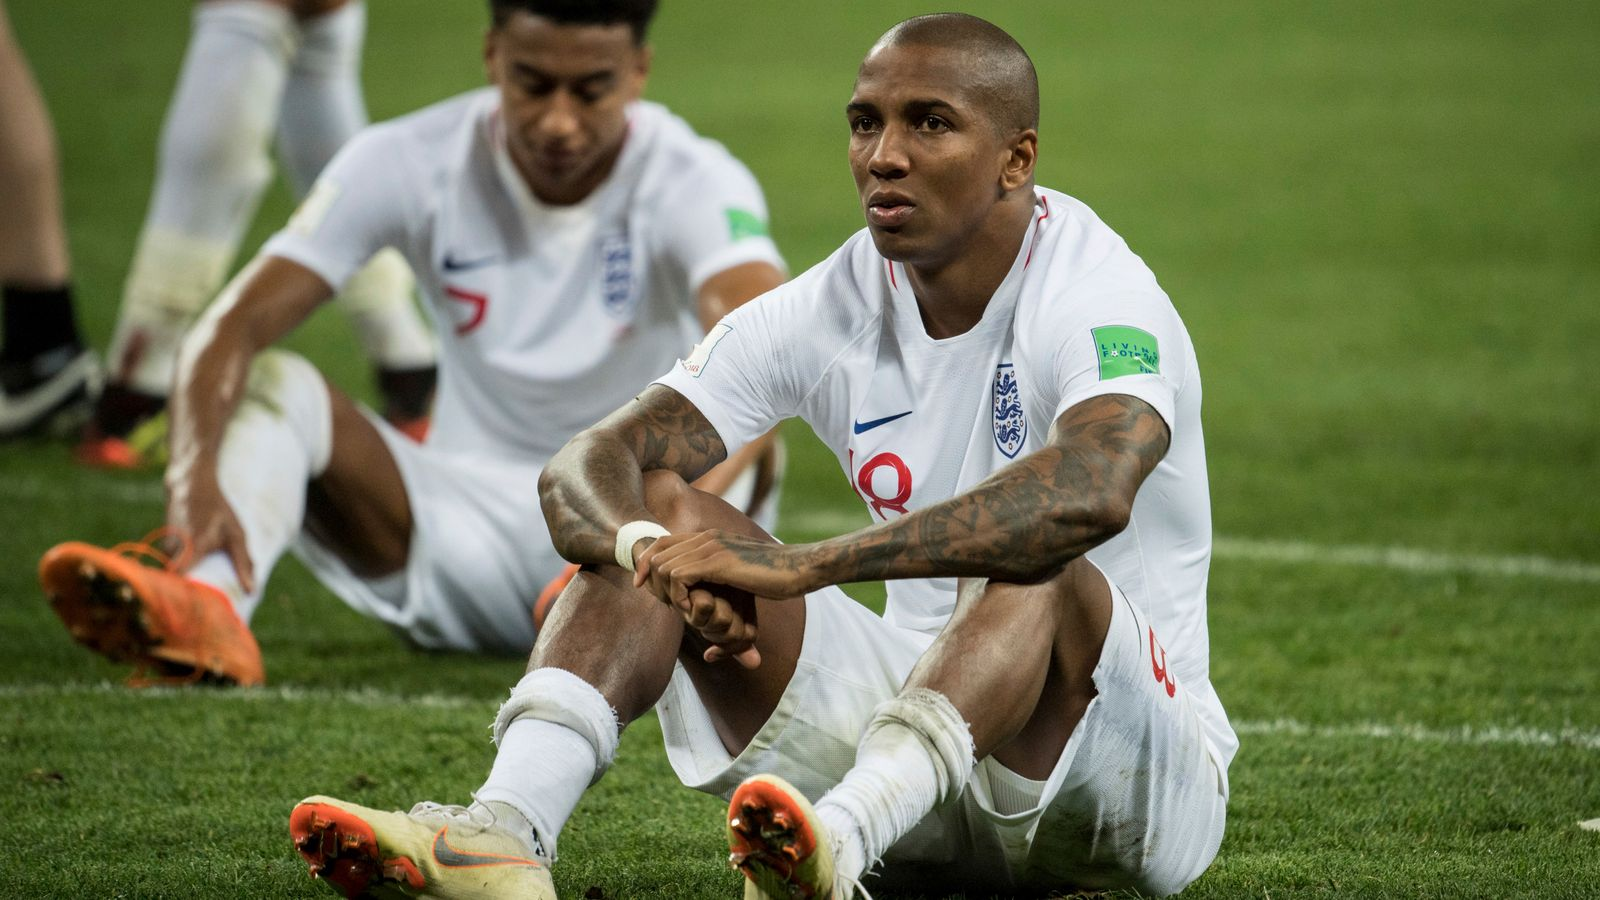 England's semi-final history: From Eusebio's Wembley tears to extra-time heartbreak against Croatia in Russia